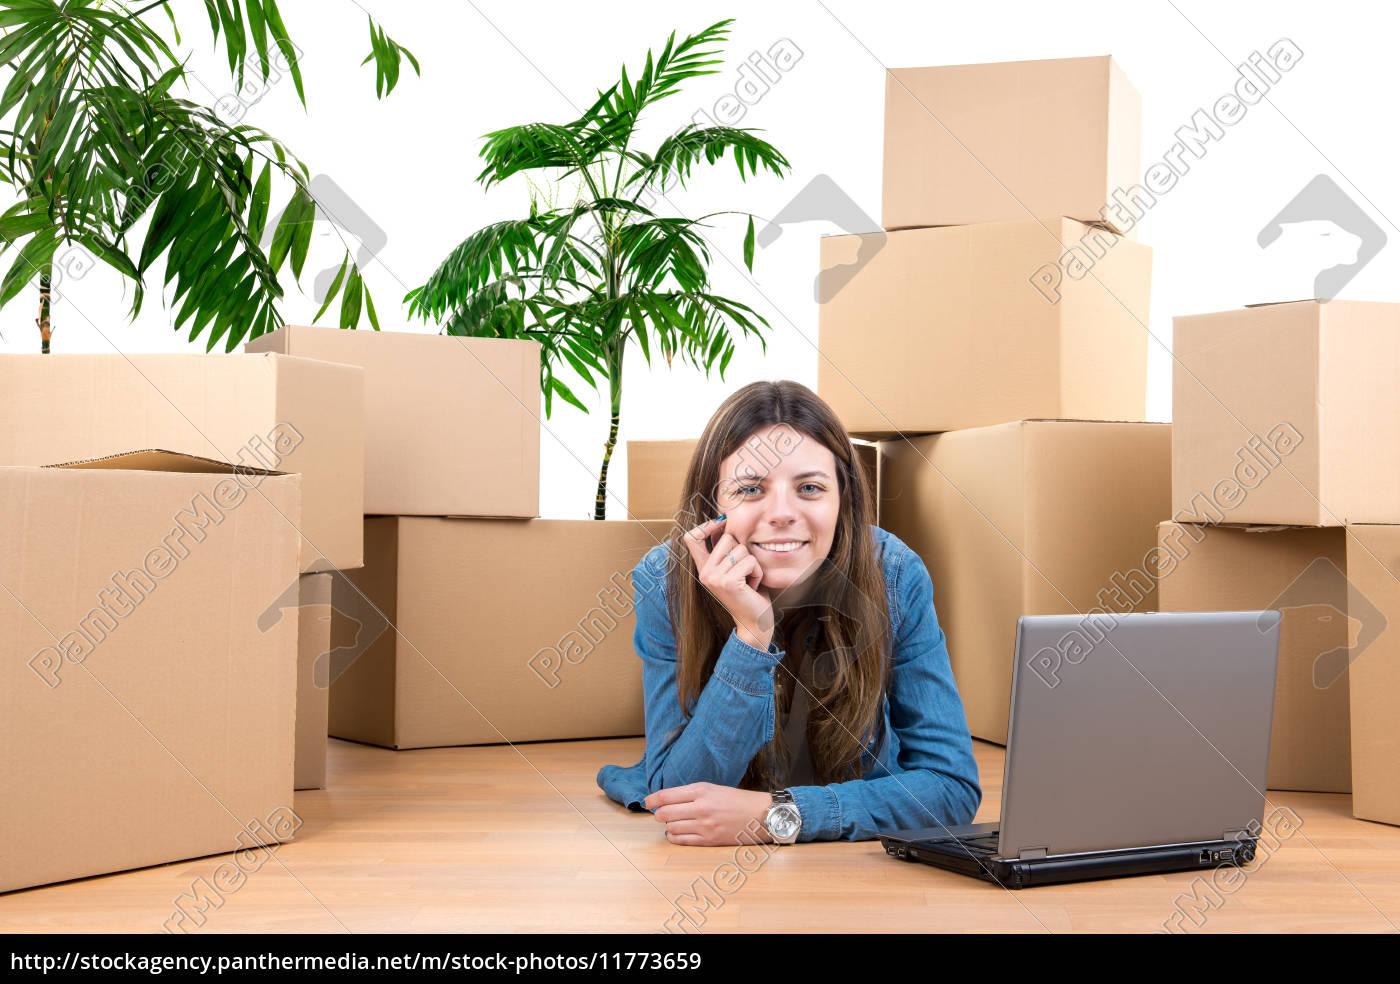 girl, with, boxes - 11773659